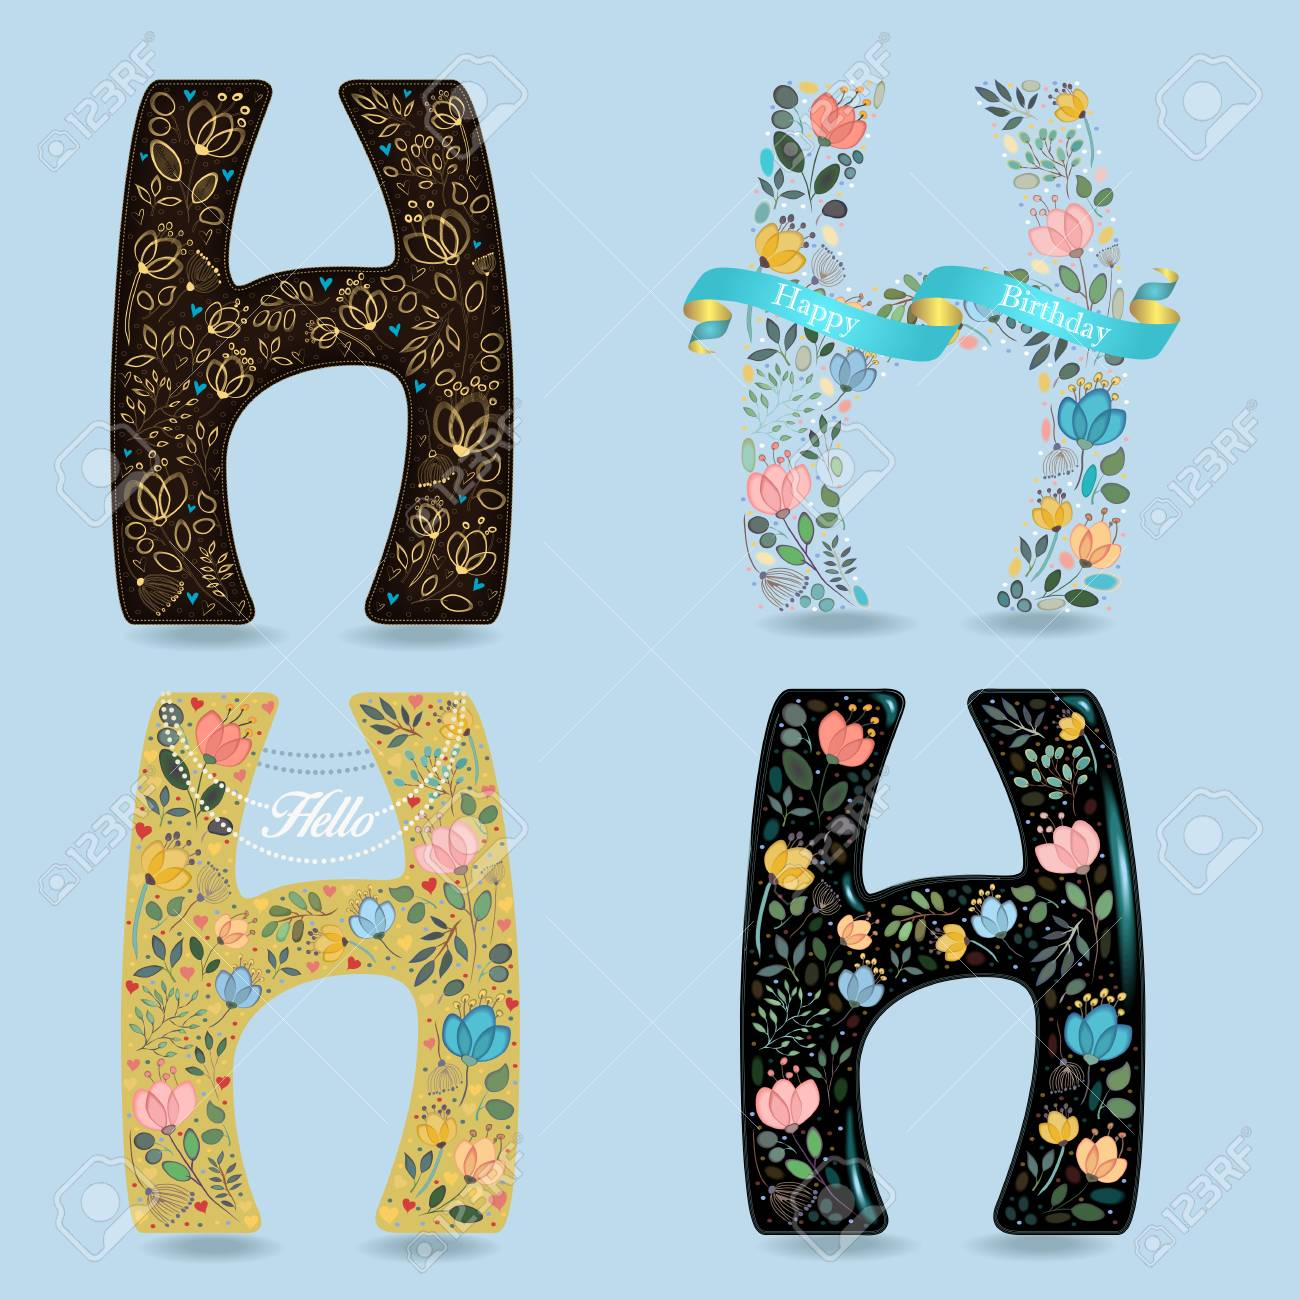 floral letters h graceful flowers and plants with watercolor and drawing effects brown